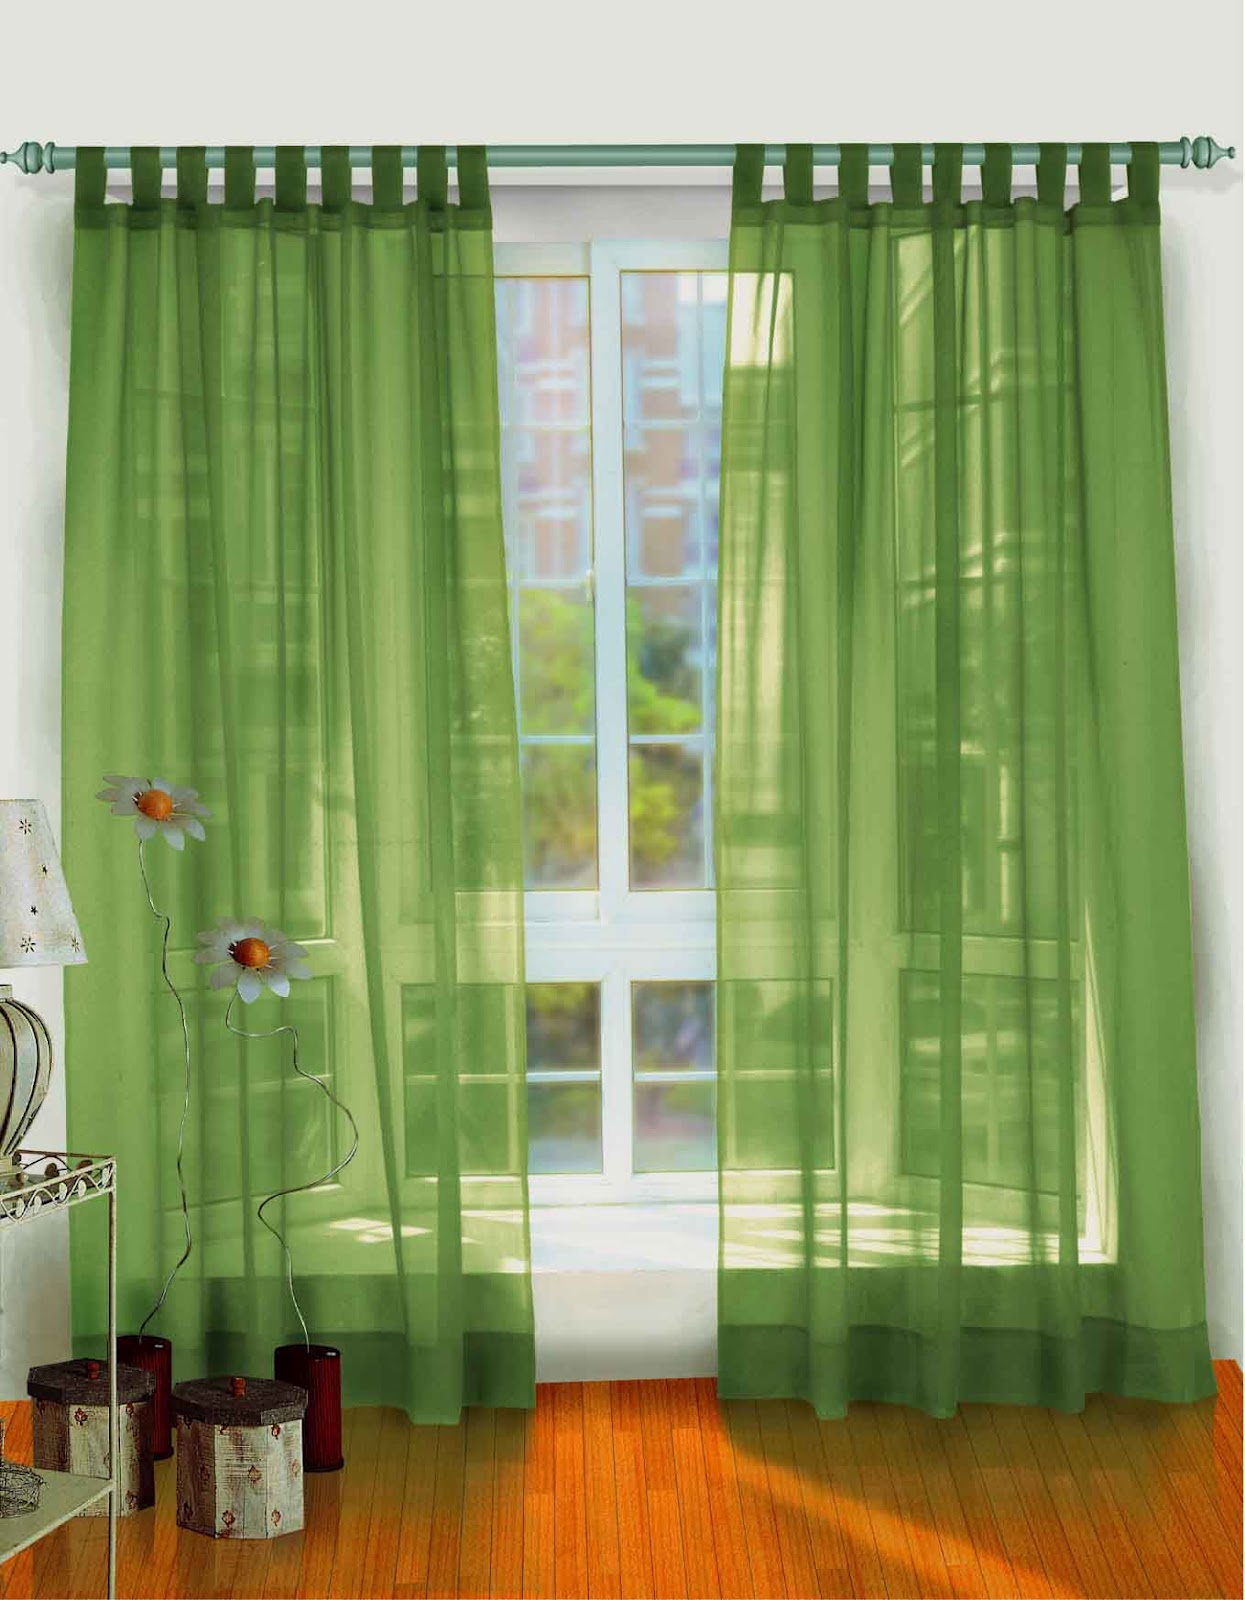 Curtains And Linens Ltd Curtains for Half Panel Door